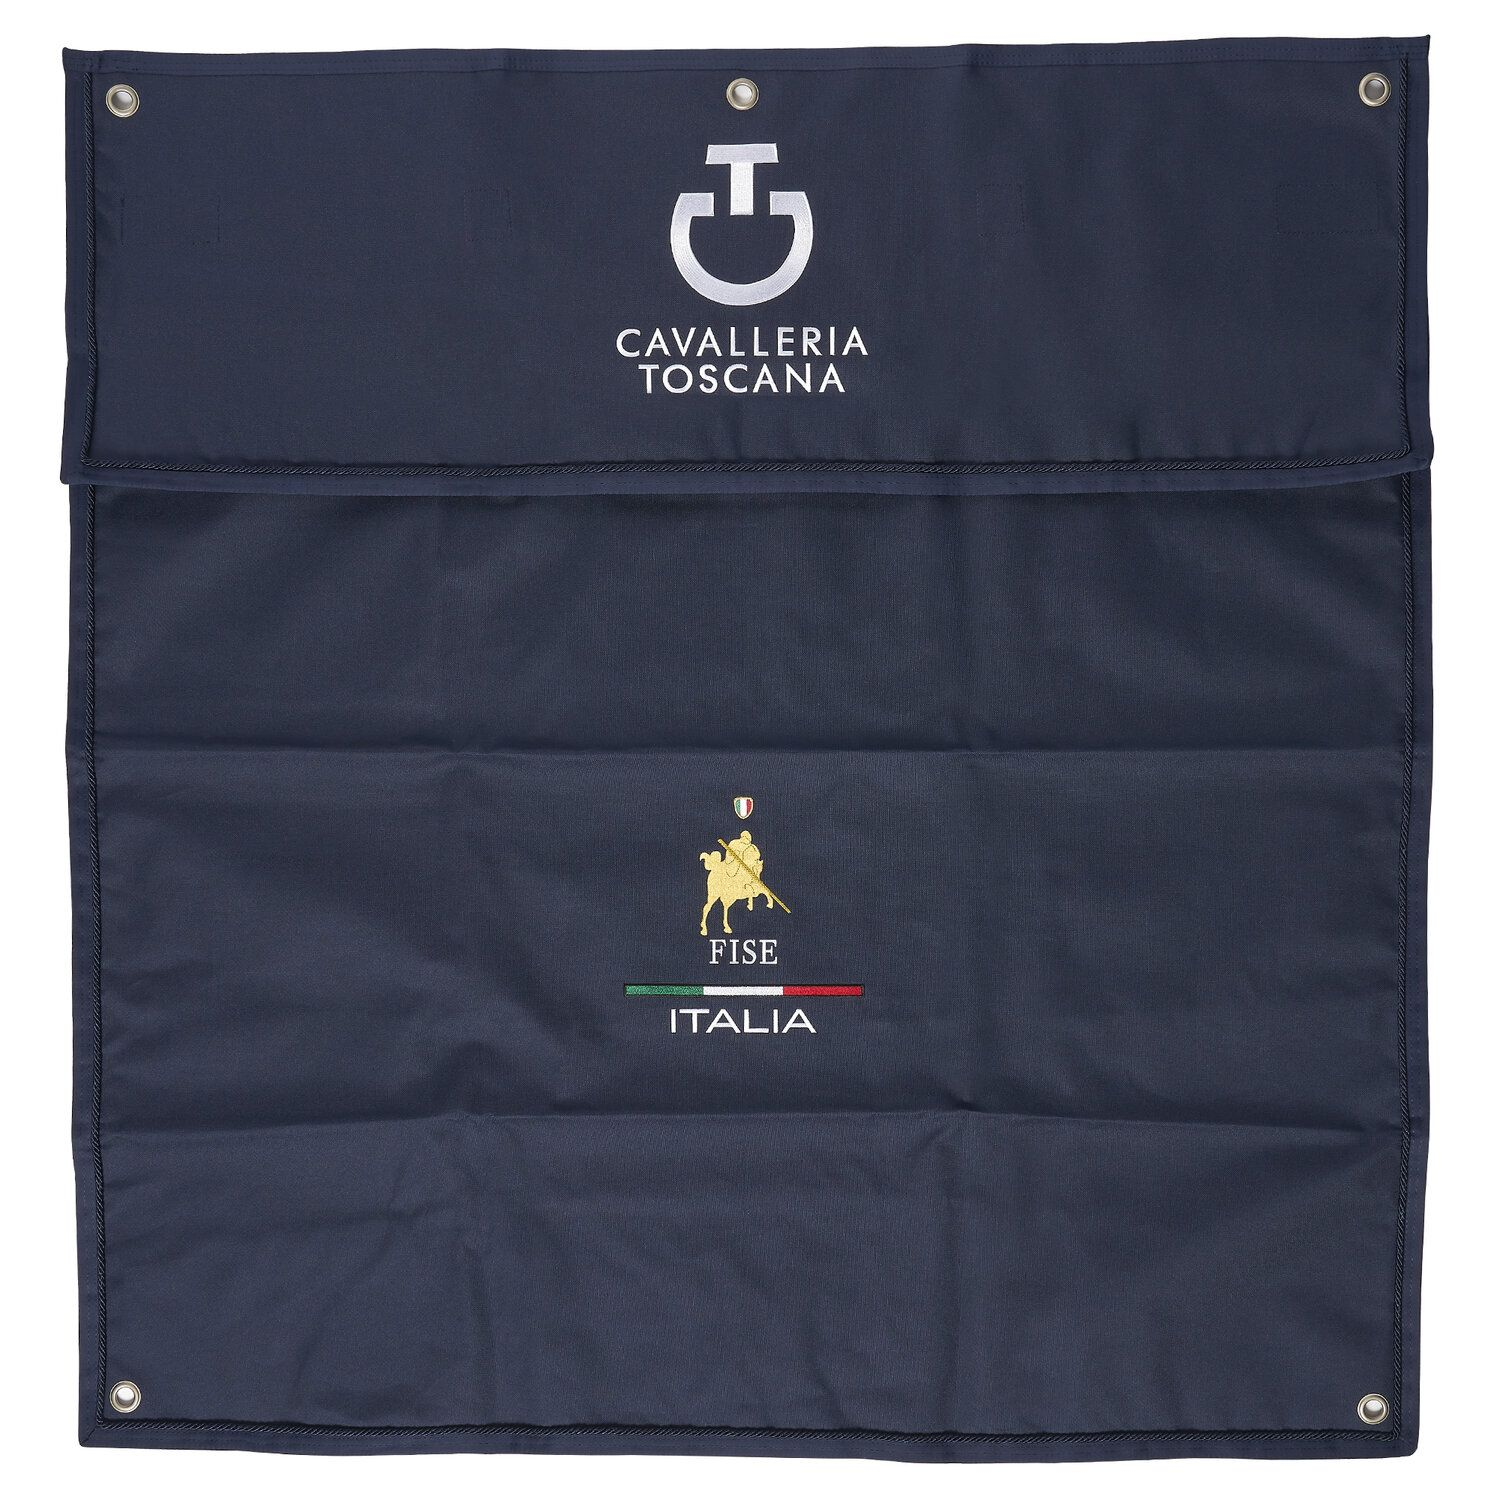 FISE stable curtain